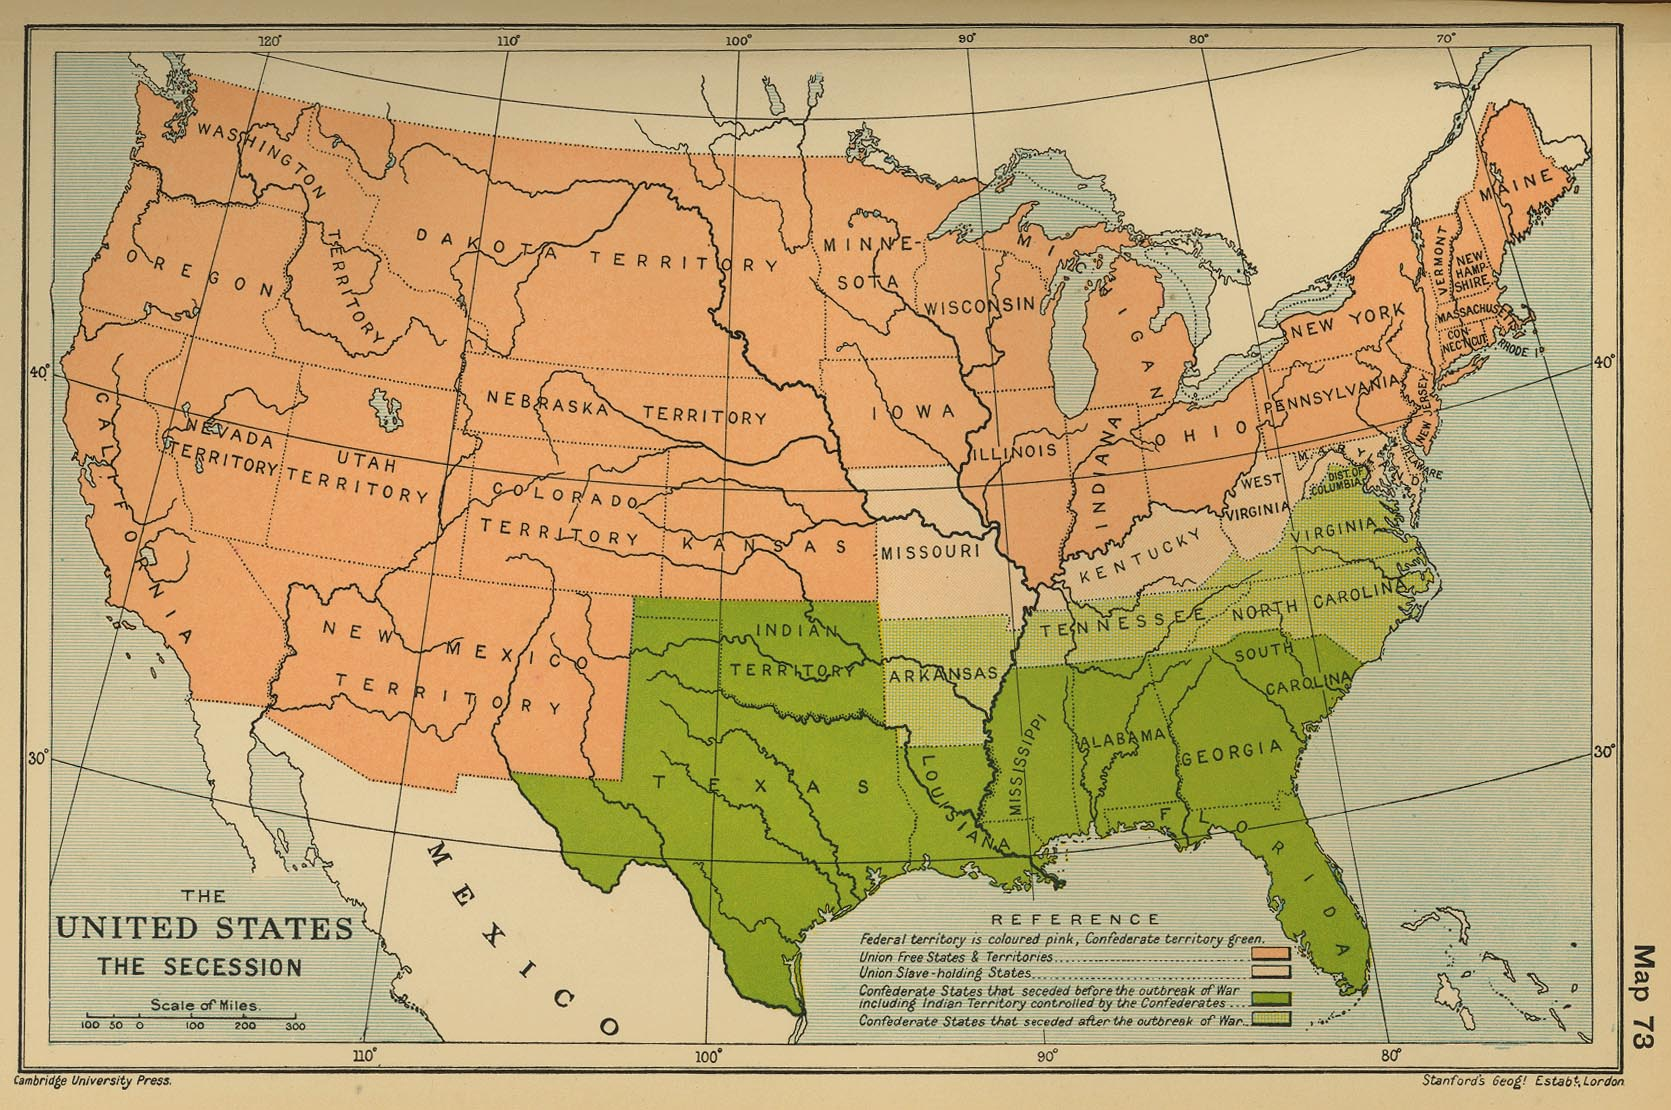 Map of the United States  The Secession Map of the United States  The Secession 1860